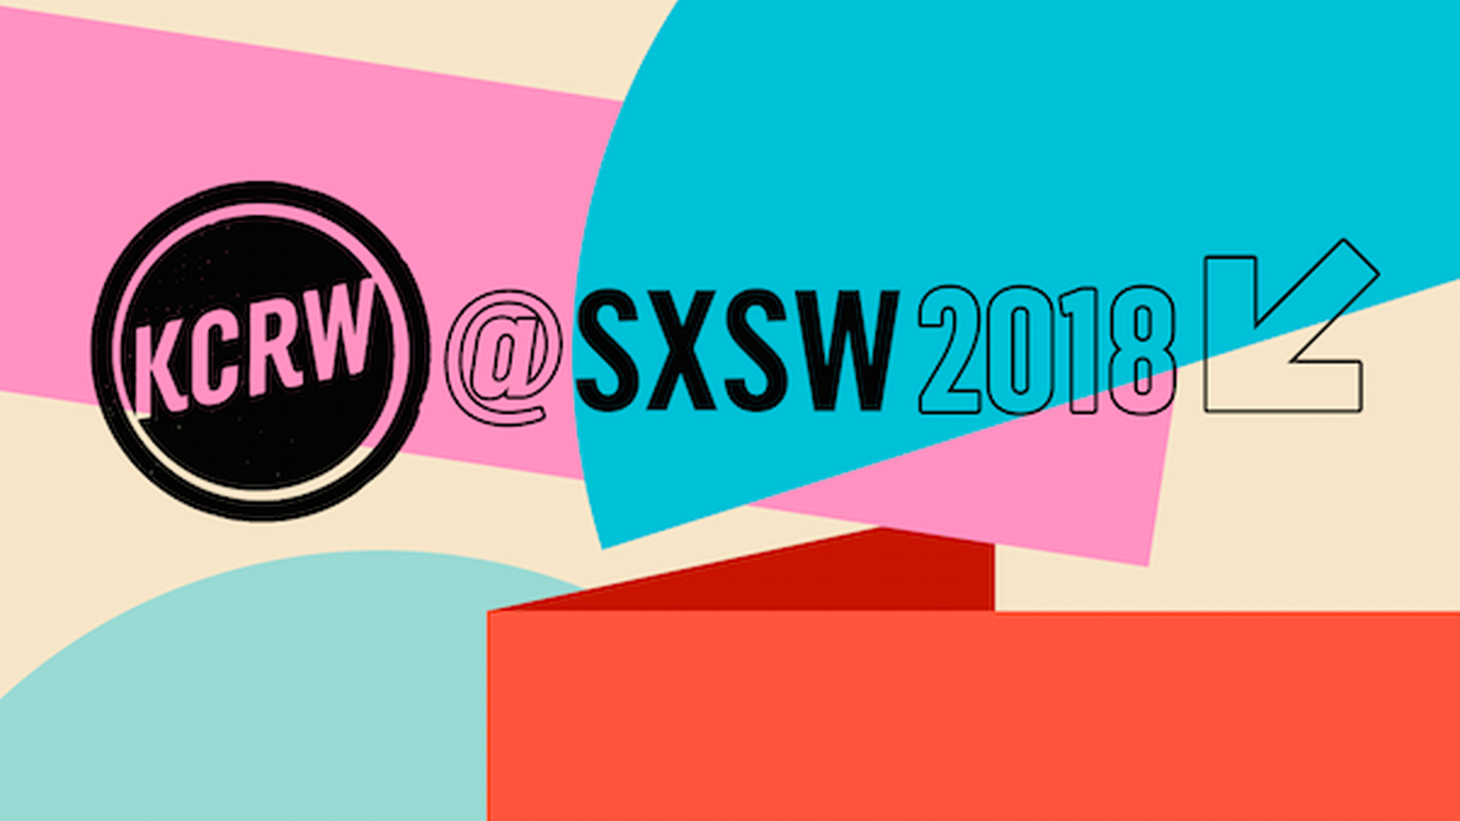 It's been a busy week @ SXSW! Hear the final recap from Jason Bentley, Anne Litt, and Jose Galvan, as they bring back loads of great new music to Los Angeles.